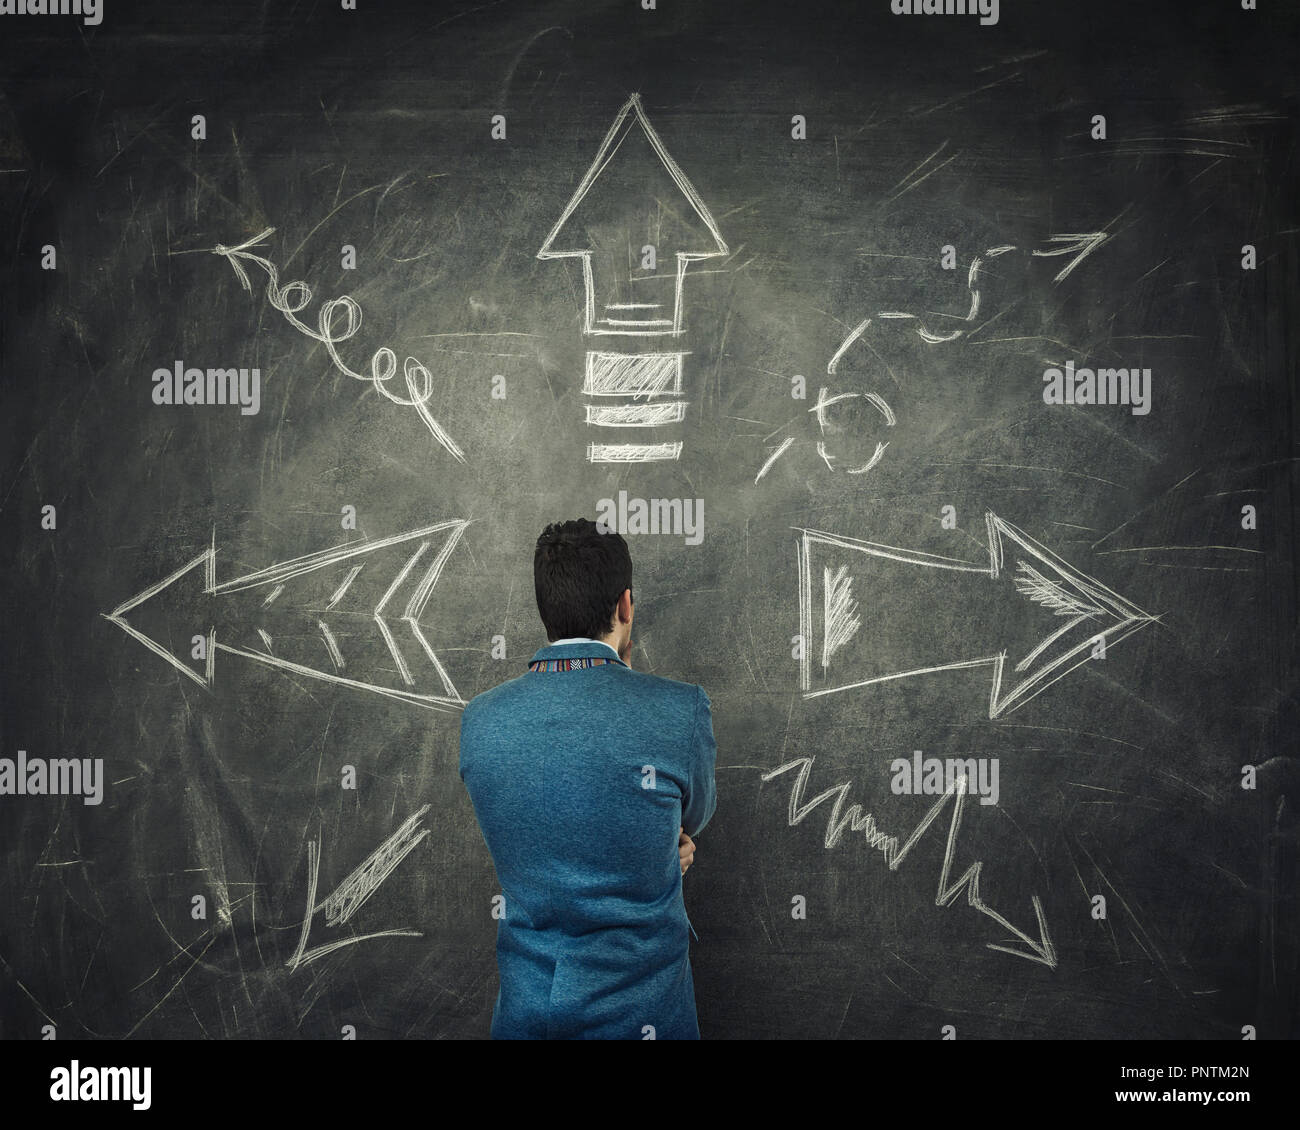 Rear view of pensive businessman thinking in front of a huge blackboard with arrows pointed to different directions. Difficult choice, decide which wa - Stock Image